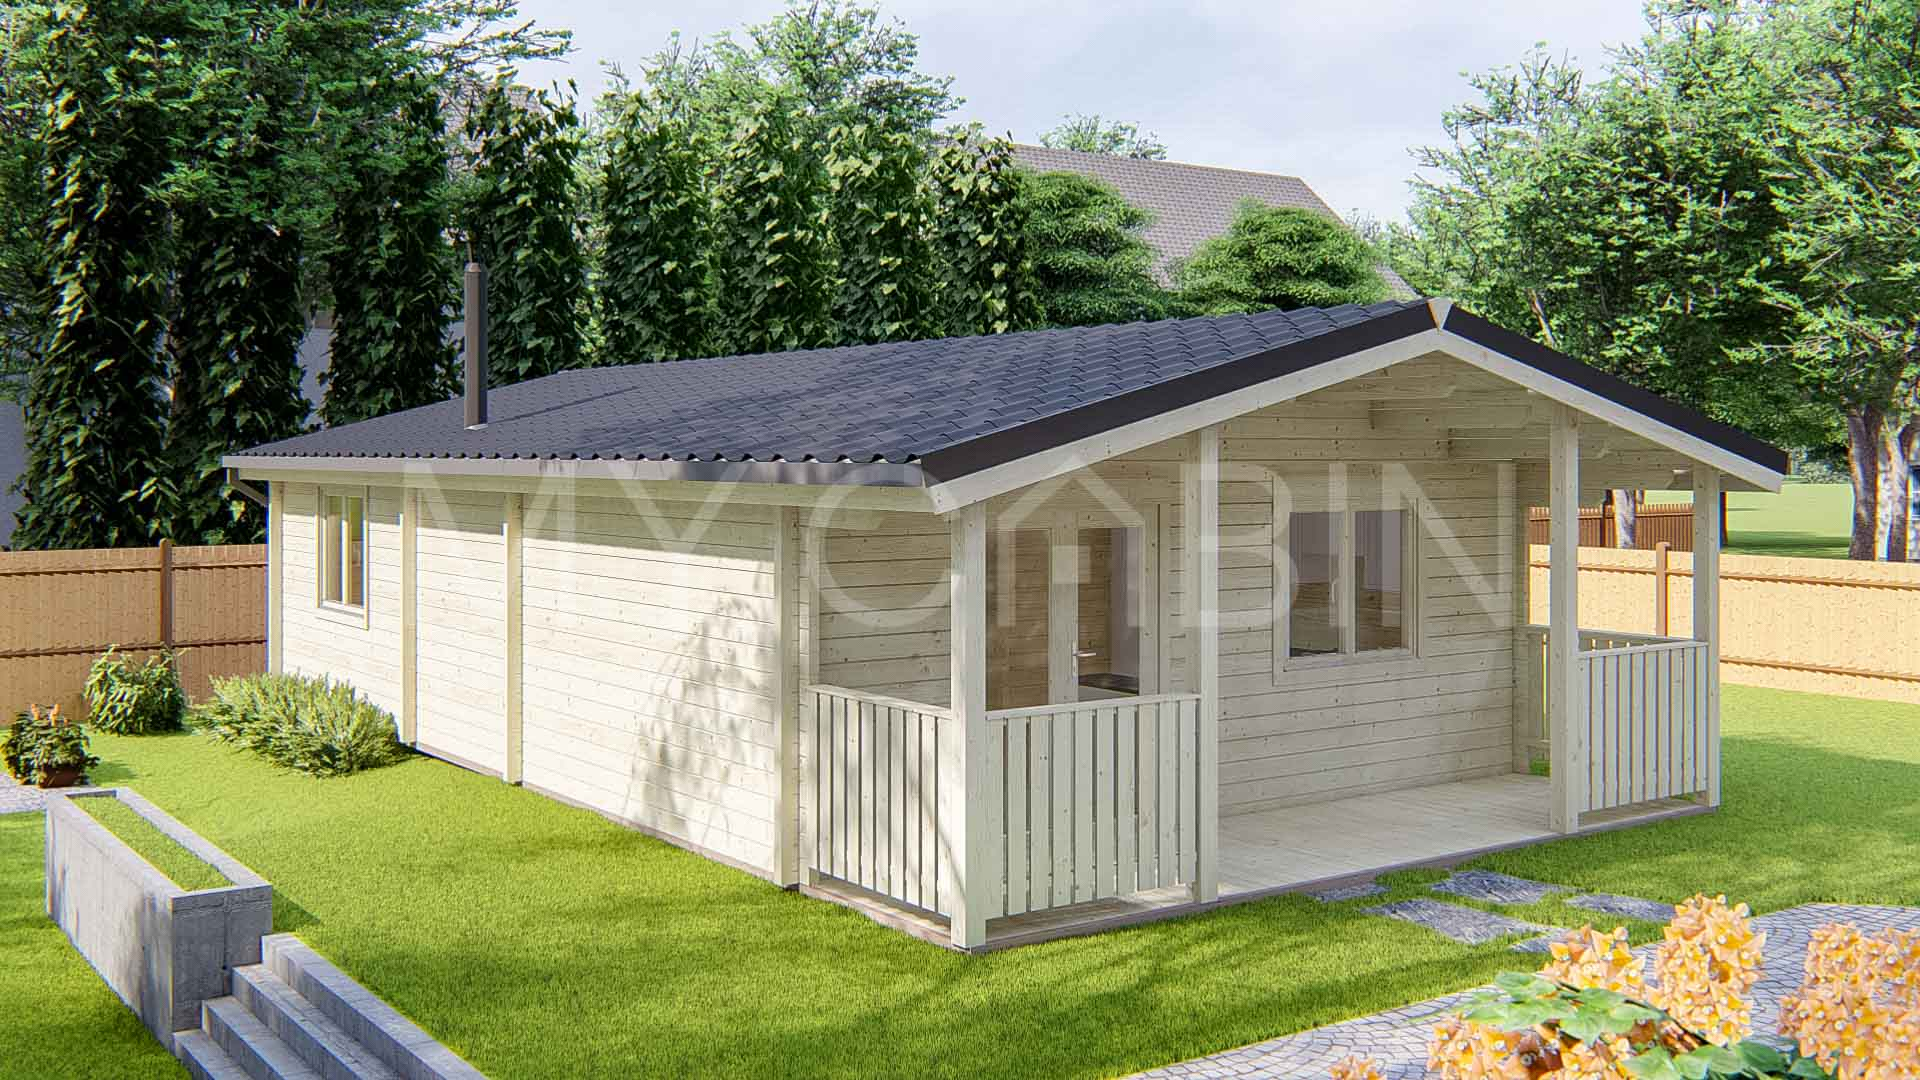 Two Bed Type A Residential Log Cabin Exterior